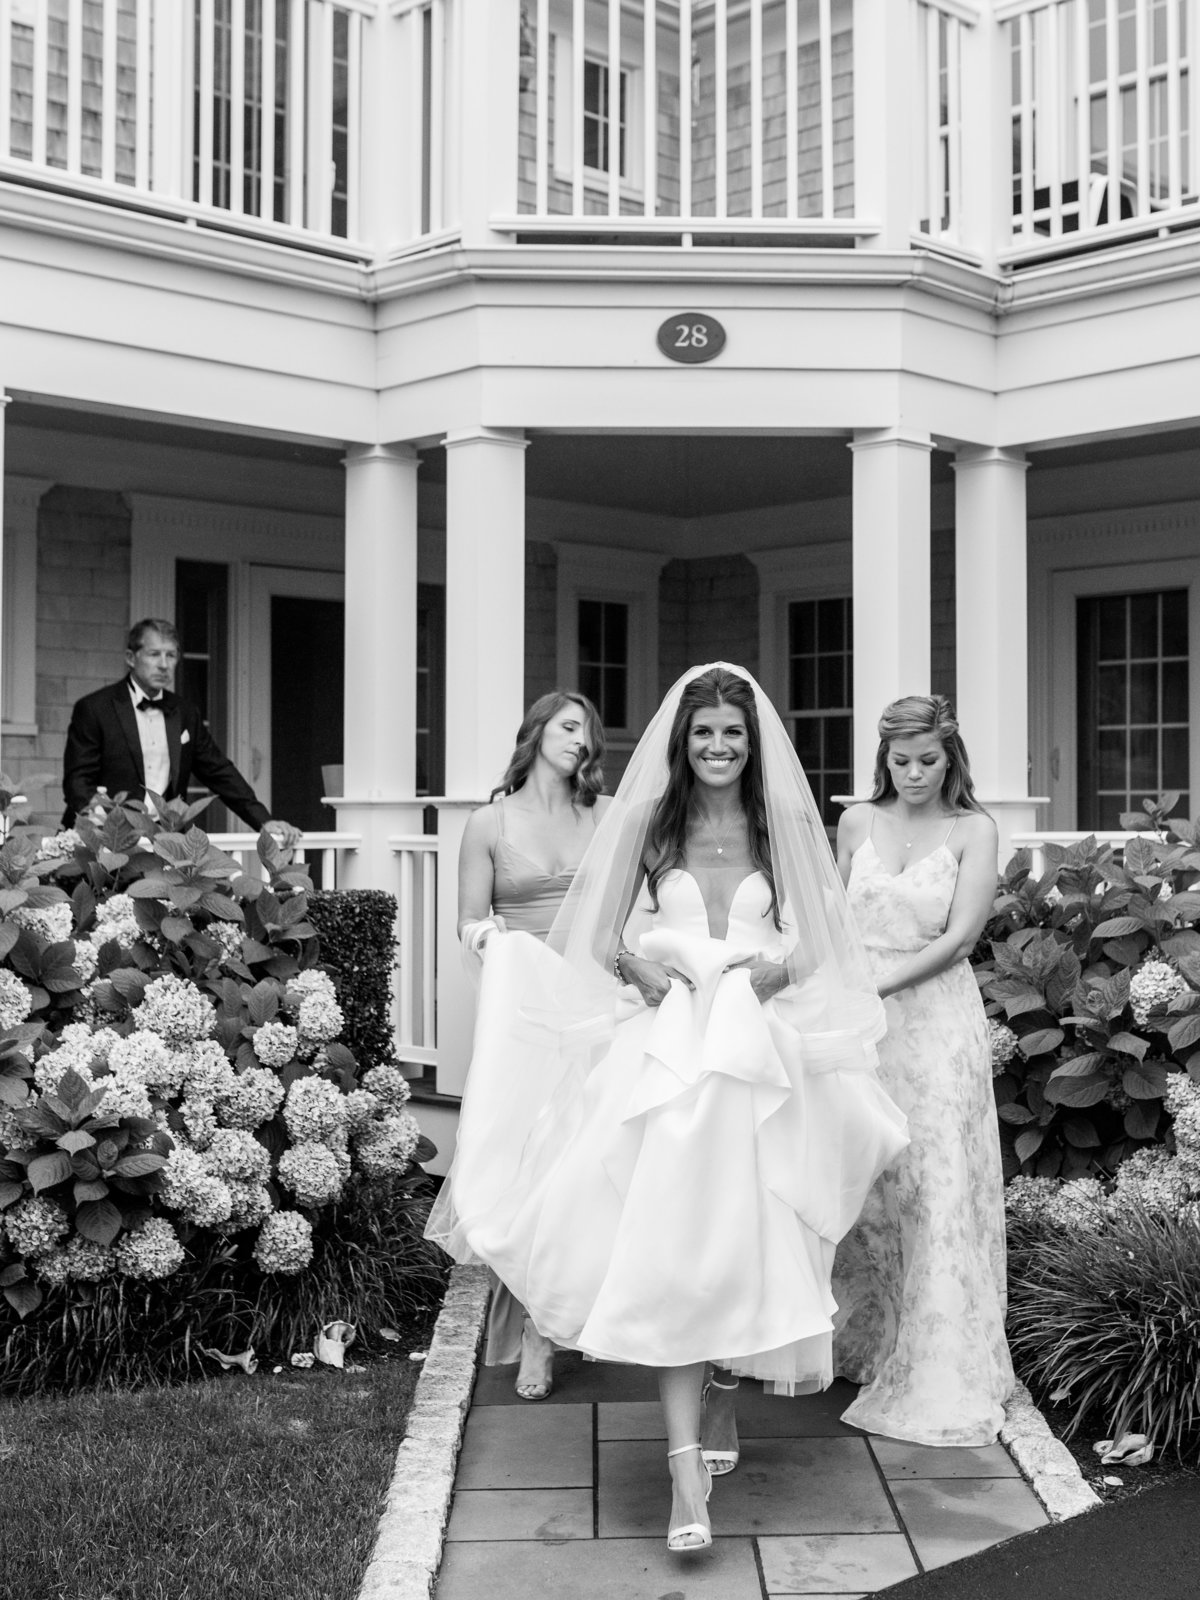 Iconic Jackie Kennedy Inspired Wedding photo for Cape Cod wedding weekend by top destination wedding planner Always Yours Events